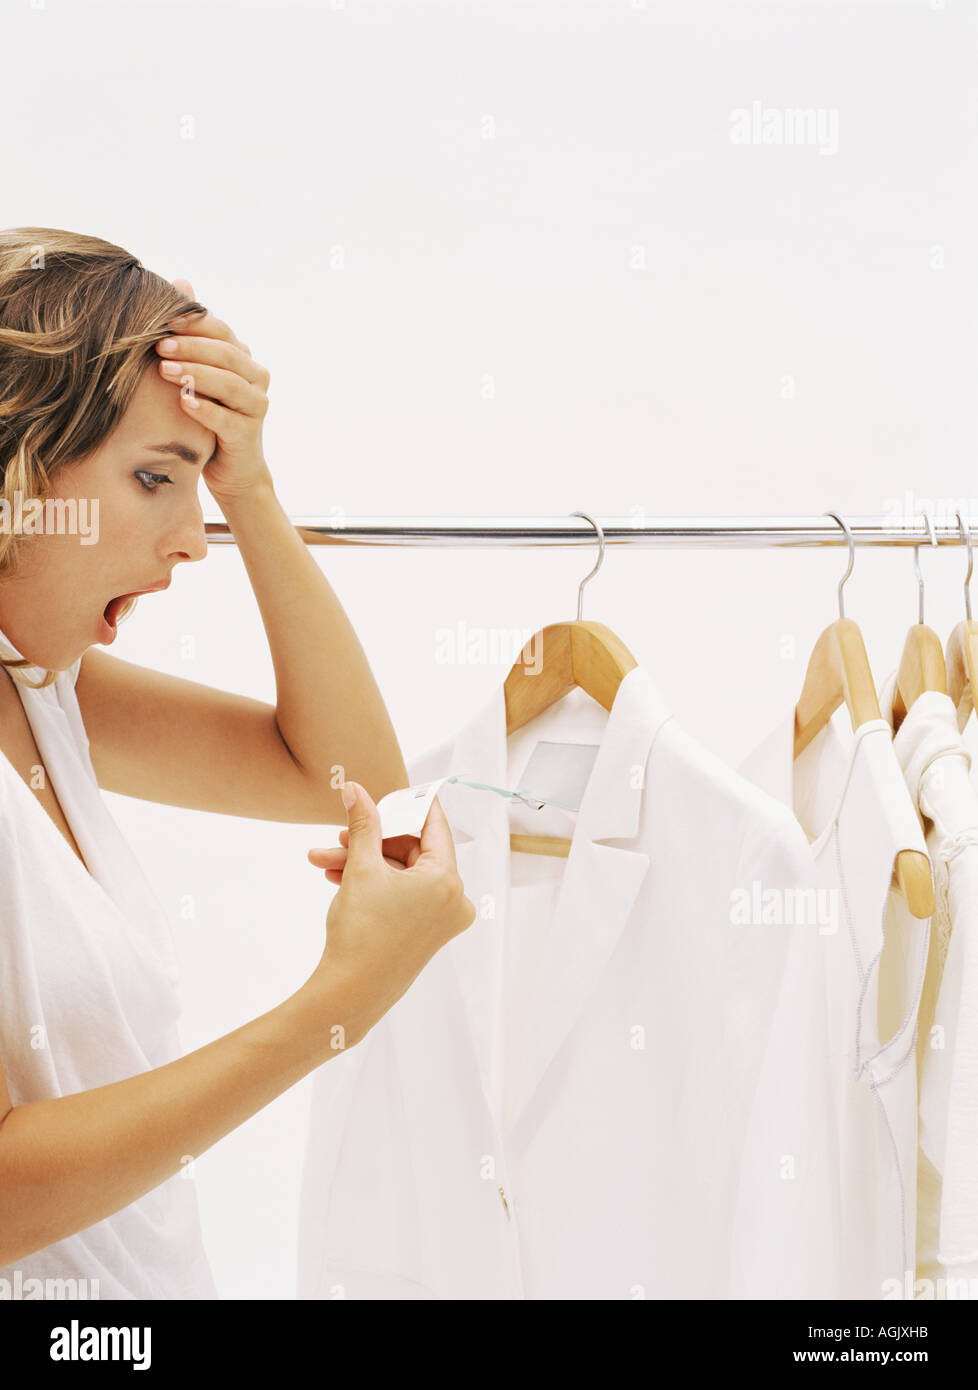 Woman shocked at price in clothes shop - Stock Image